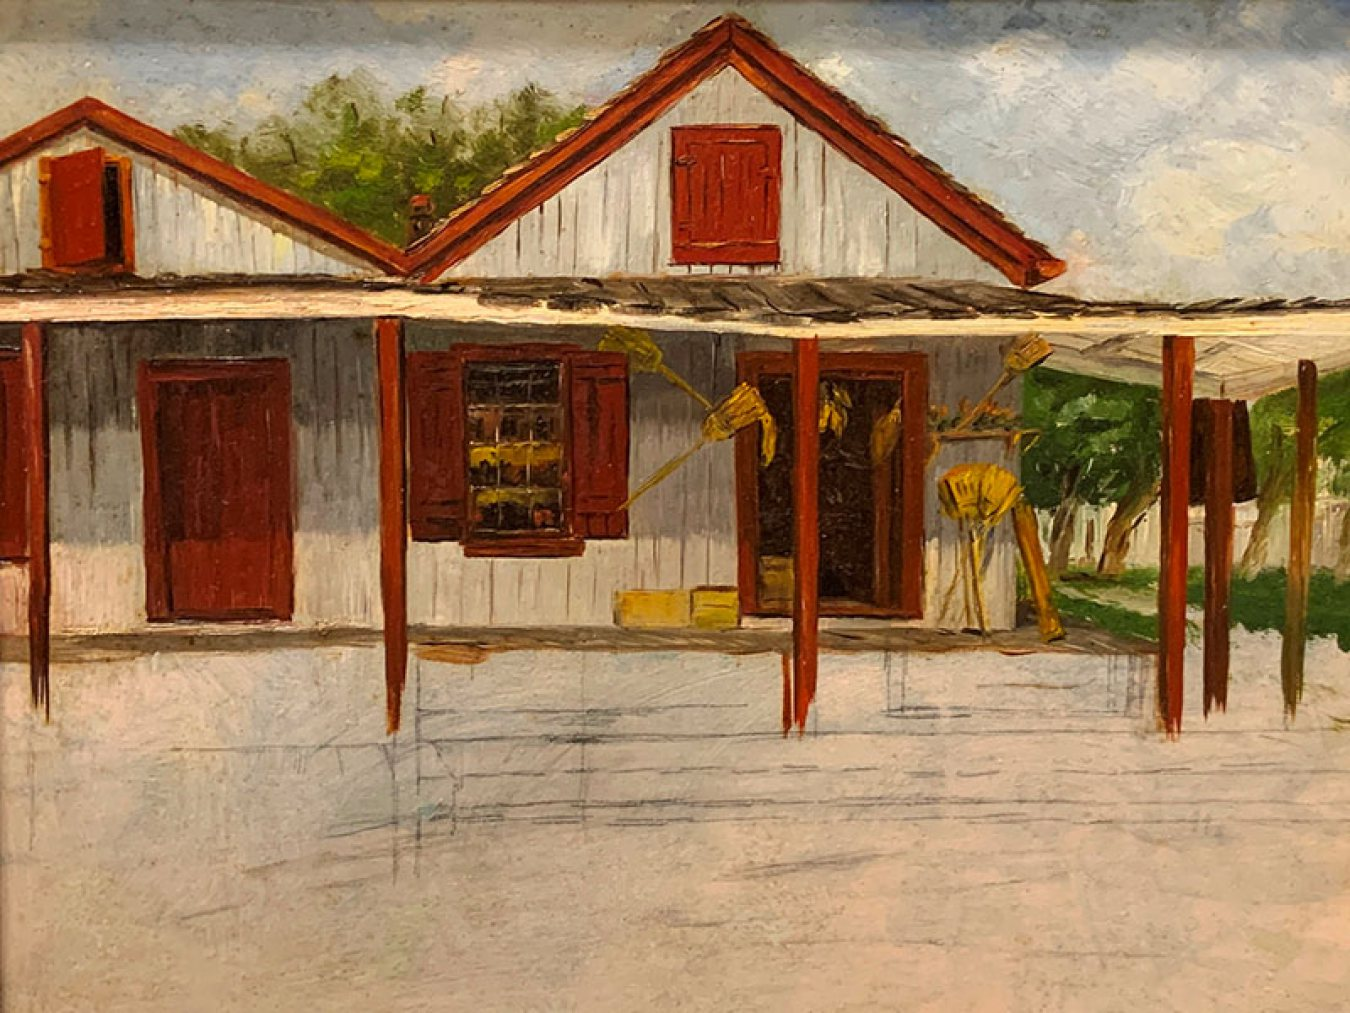 Painting of Guzzi's Store